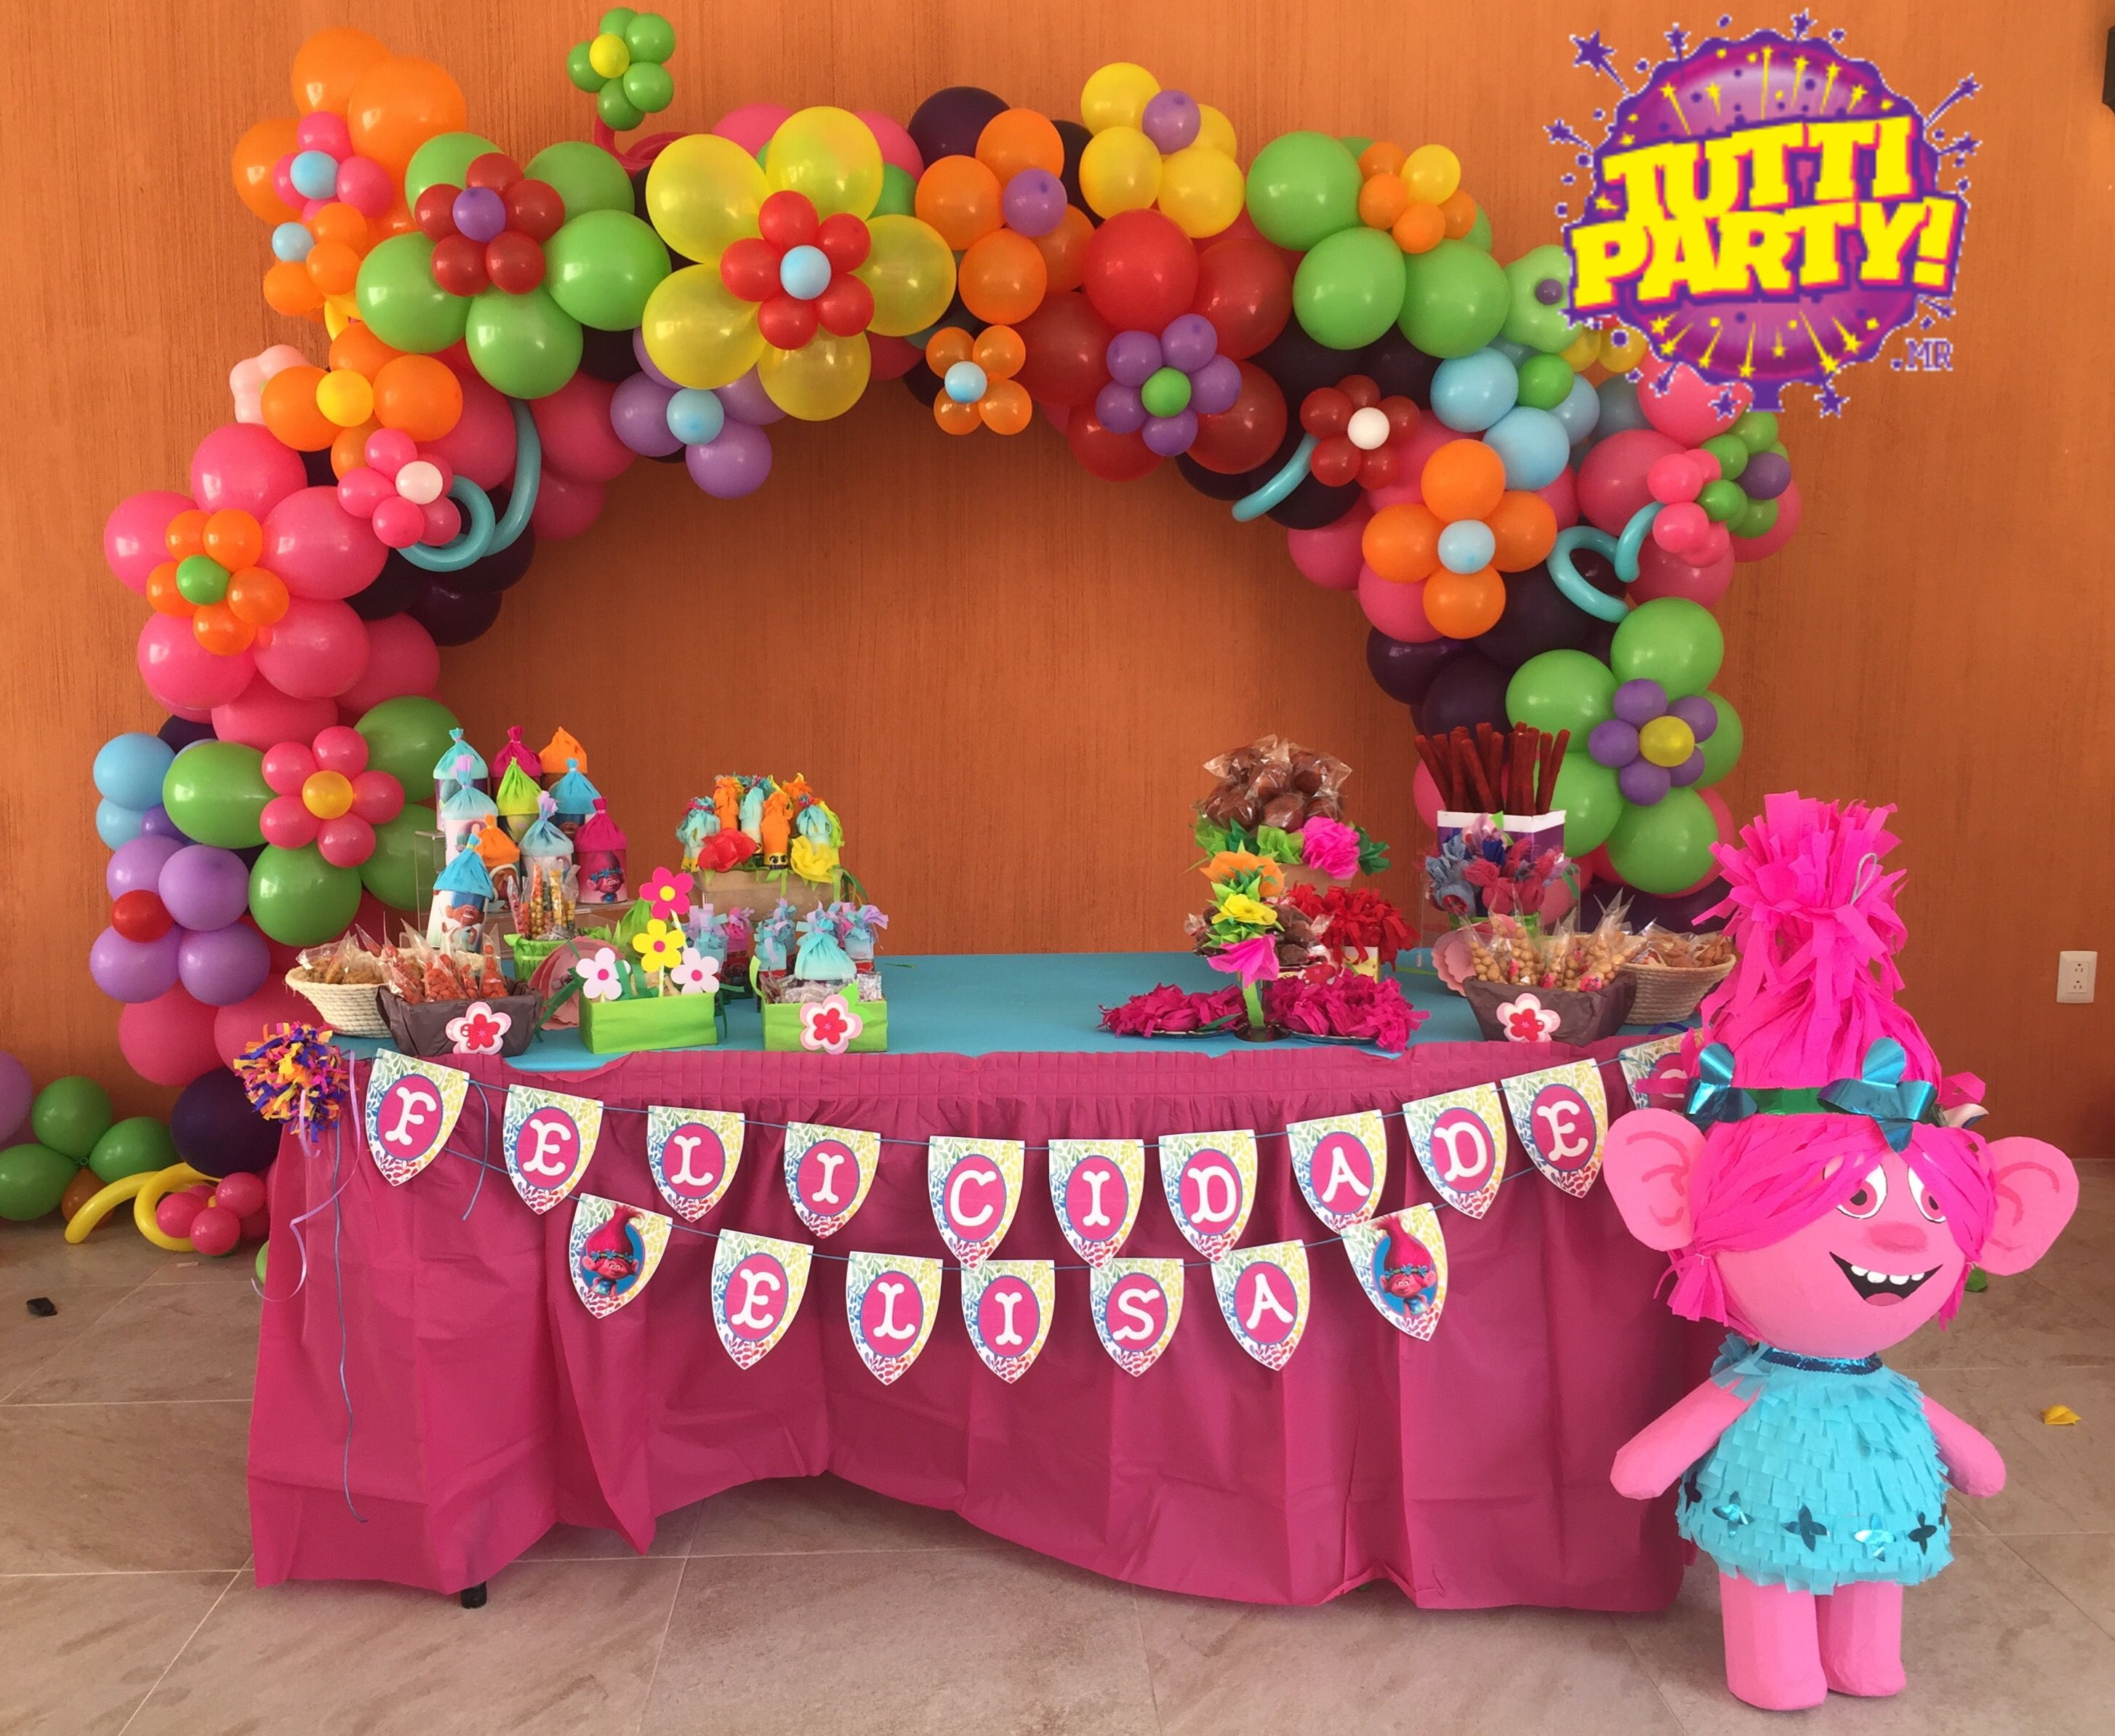 Southern Blue Celebrations TROLLS PARTY IDEAS